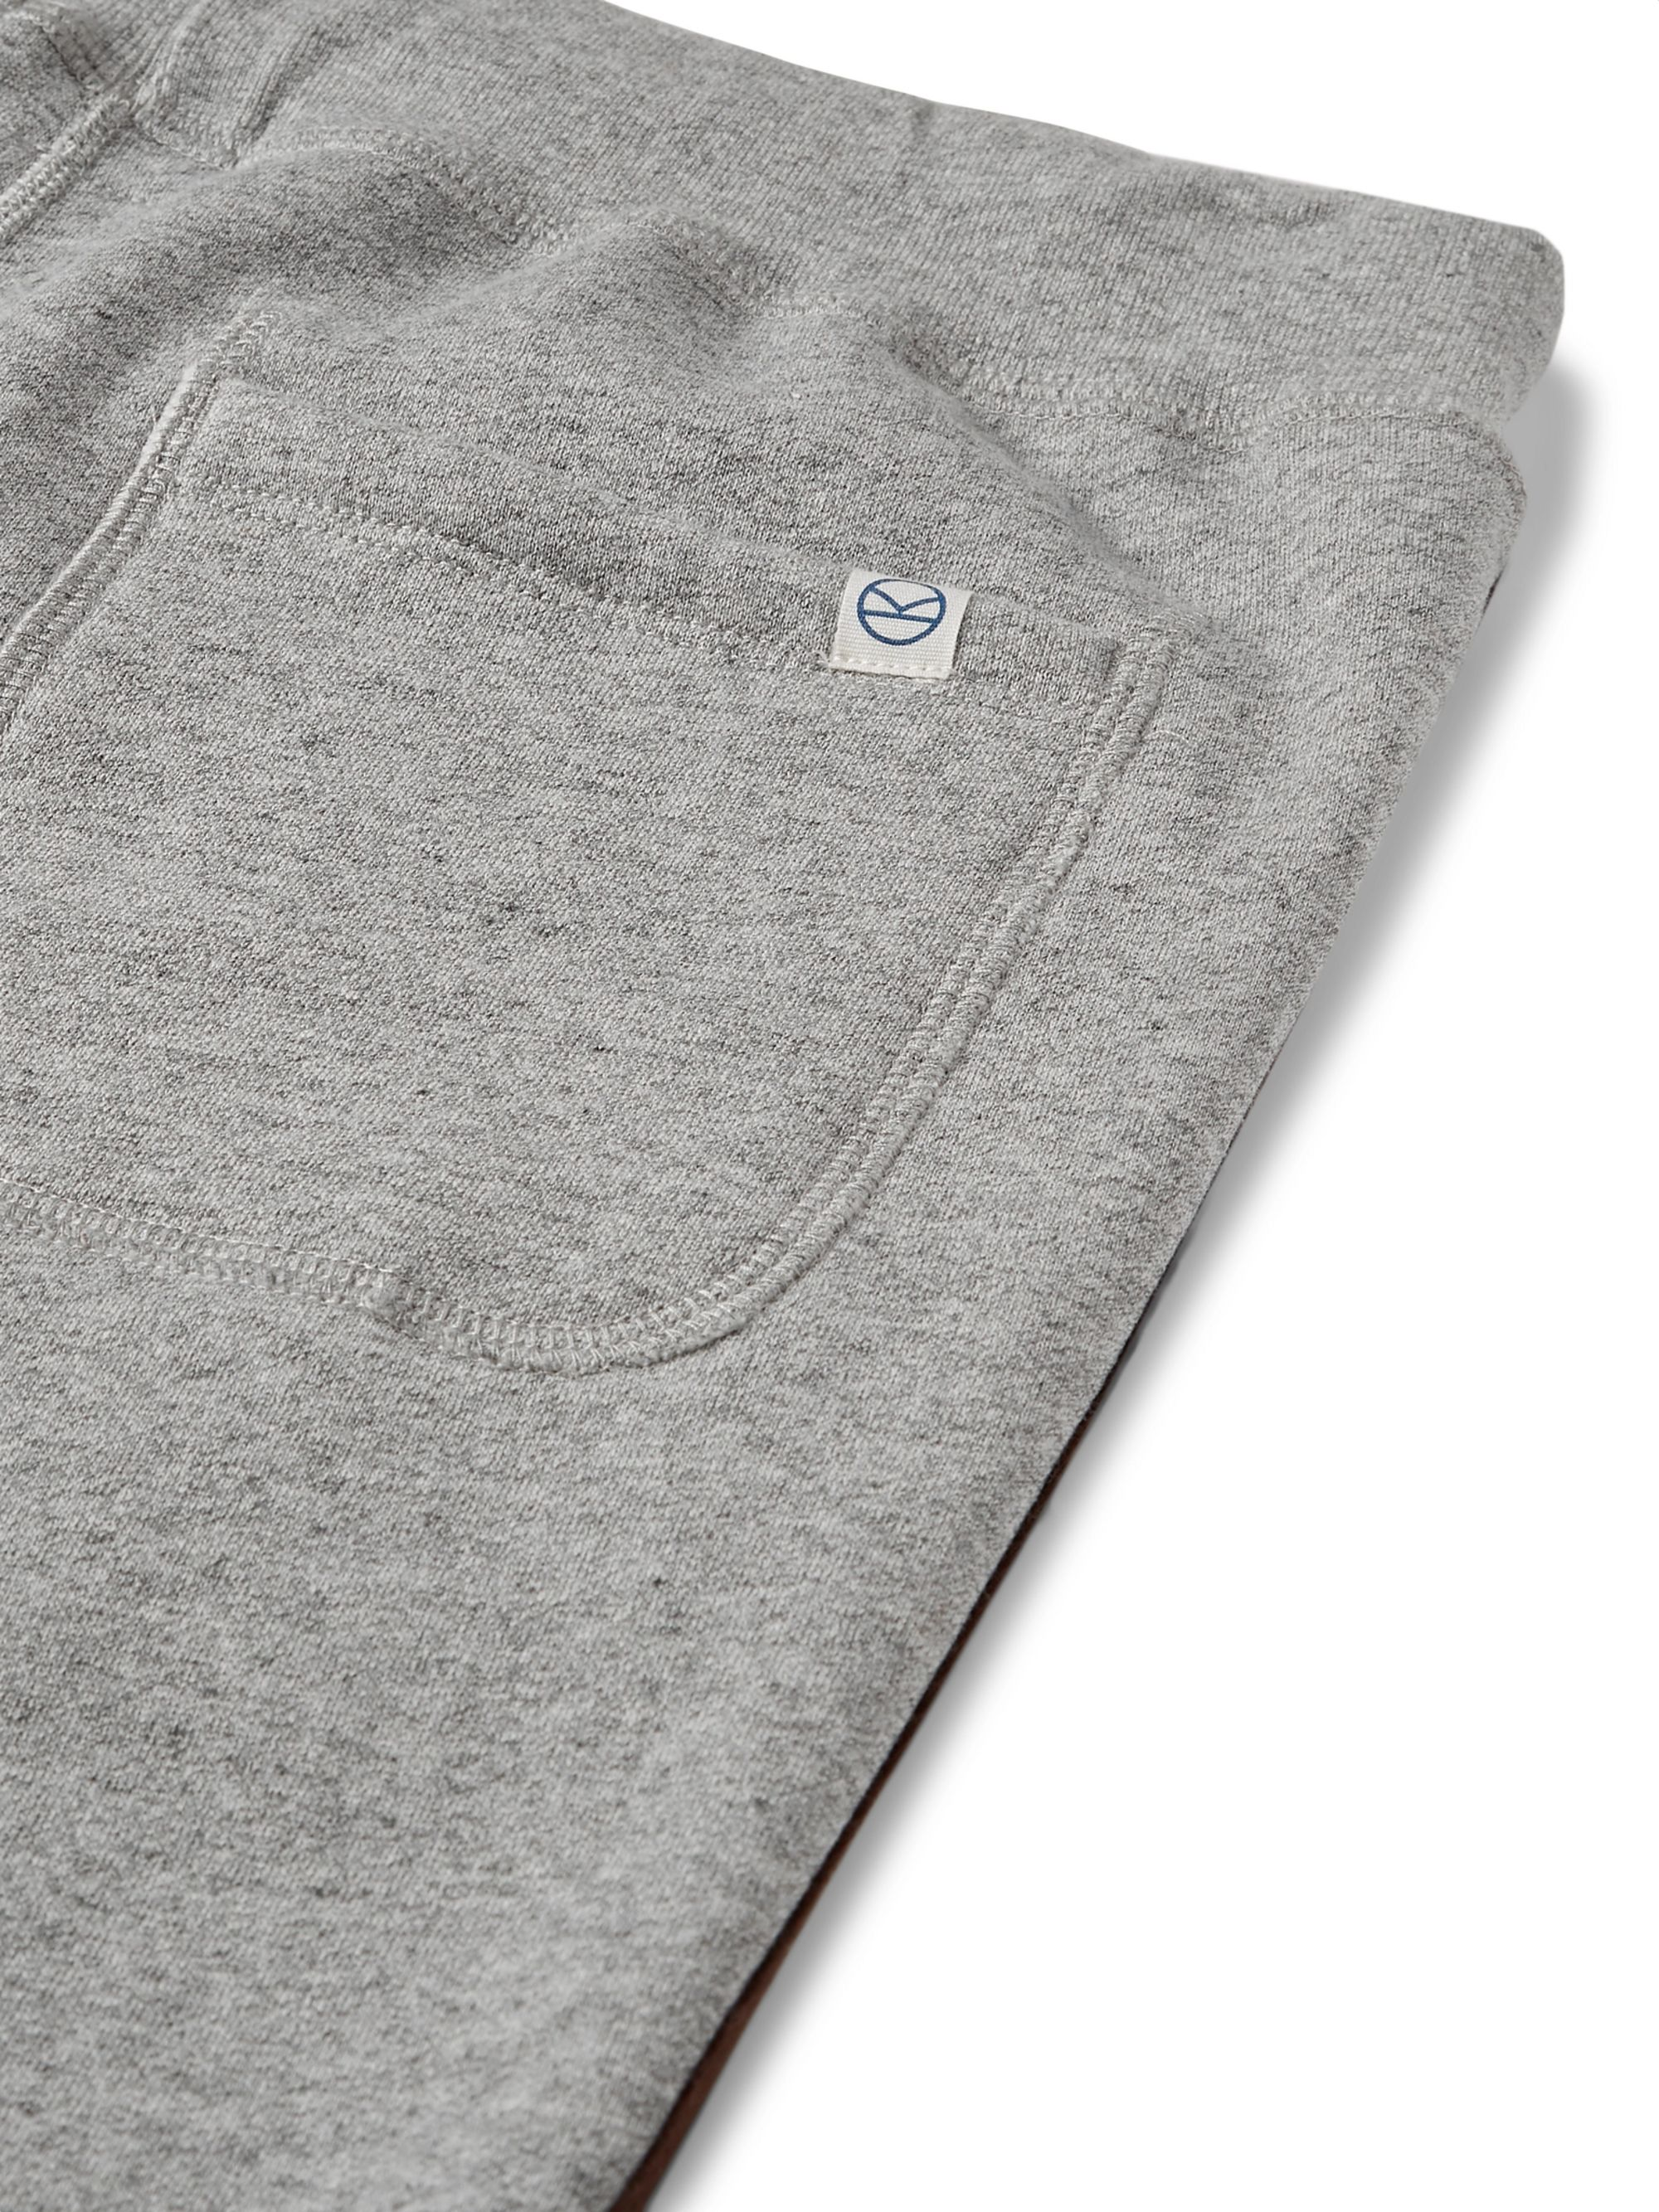 Gray + Todd Snyder + Champion Harry's Slim Fit Tapered